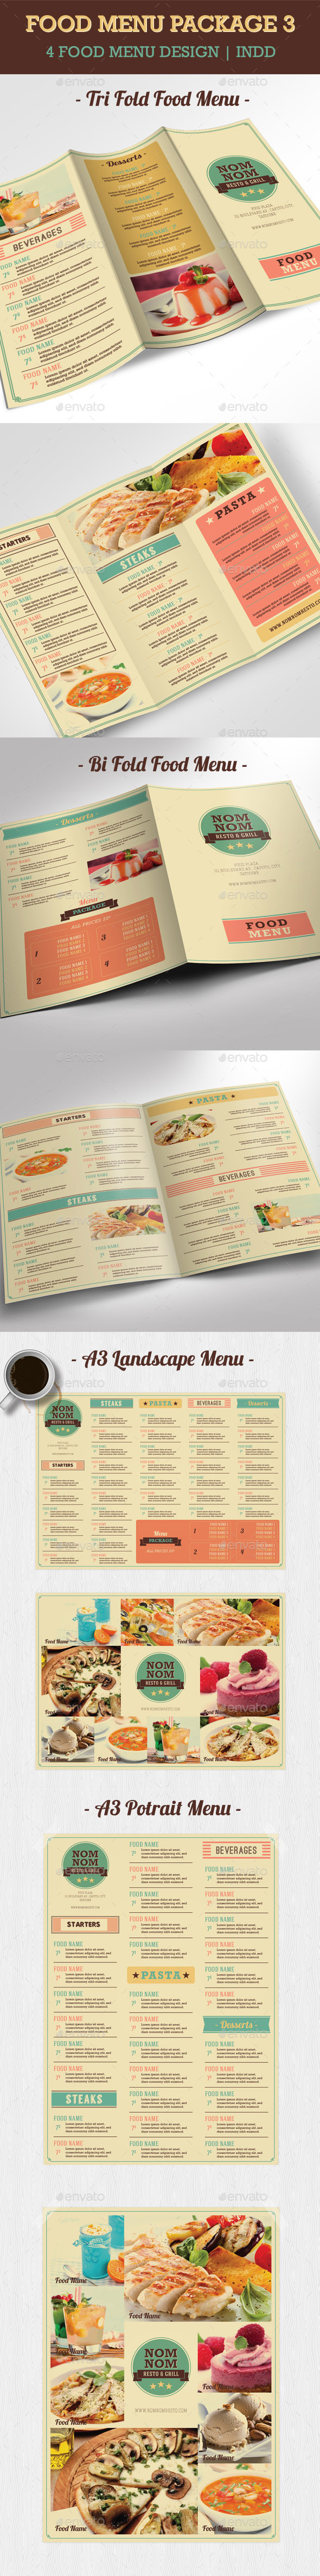 Food Menu Package 3 - Food Menus Print Templates